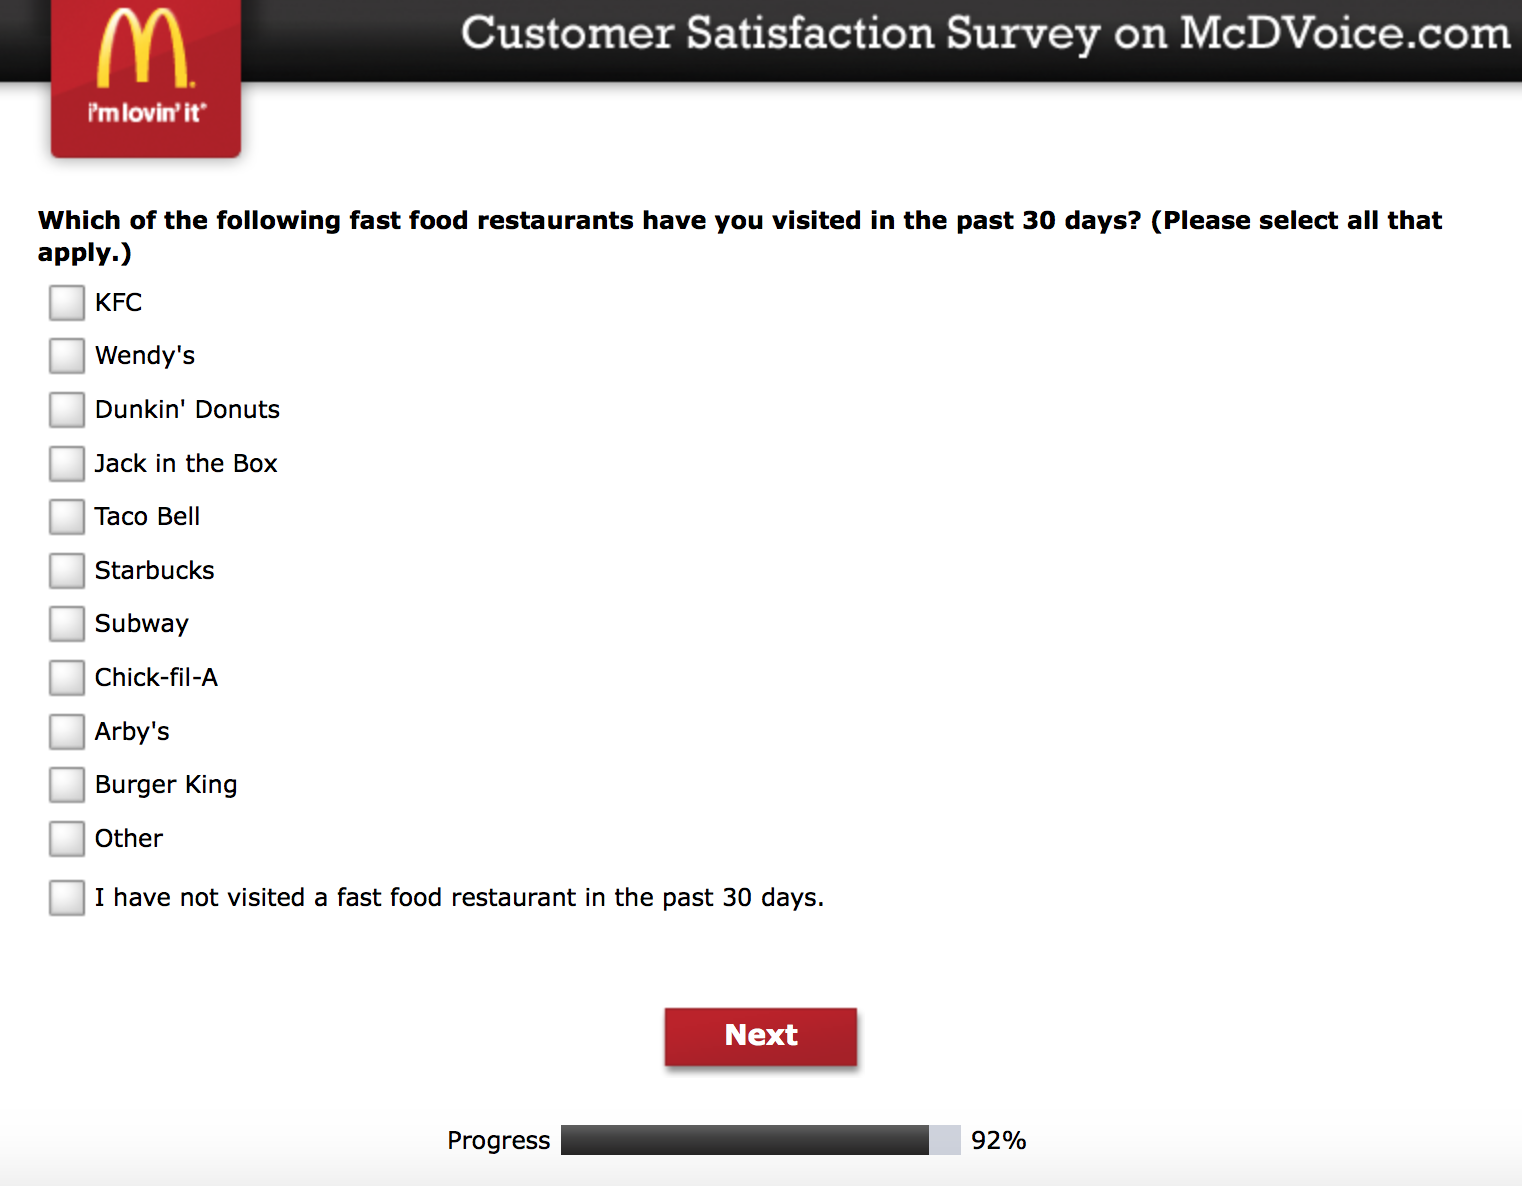 Mcdvoice.com Customer Survey 22